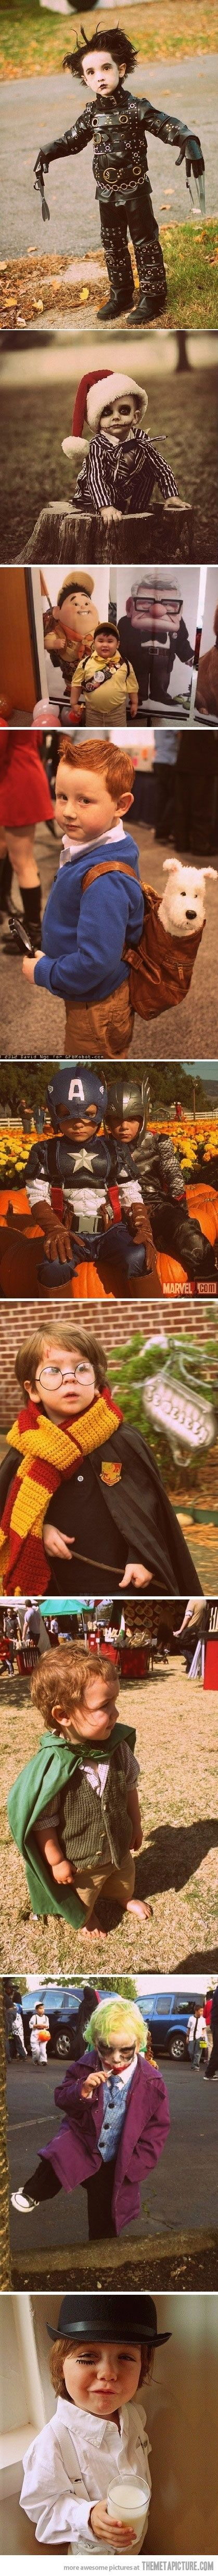 Parenting: You're doing it very right #deguisementfantomeenfant